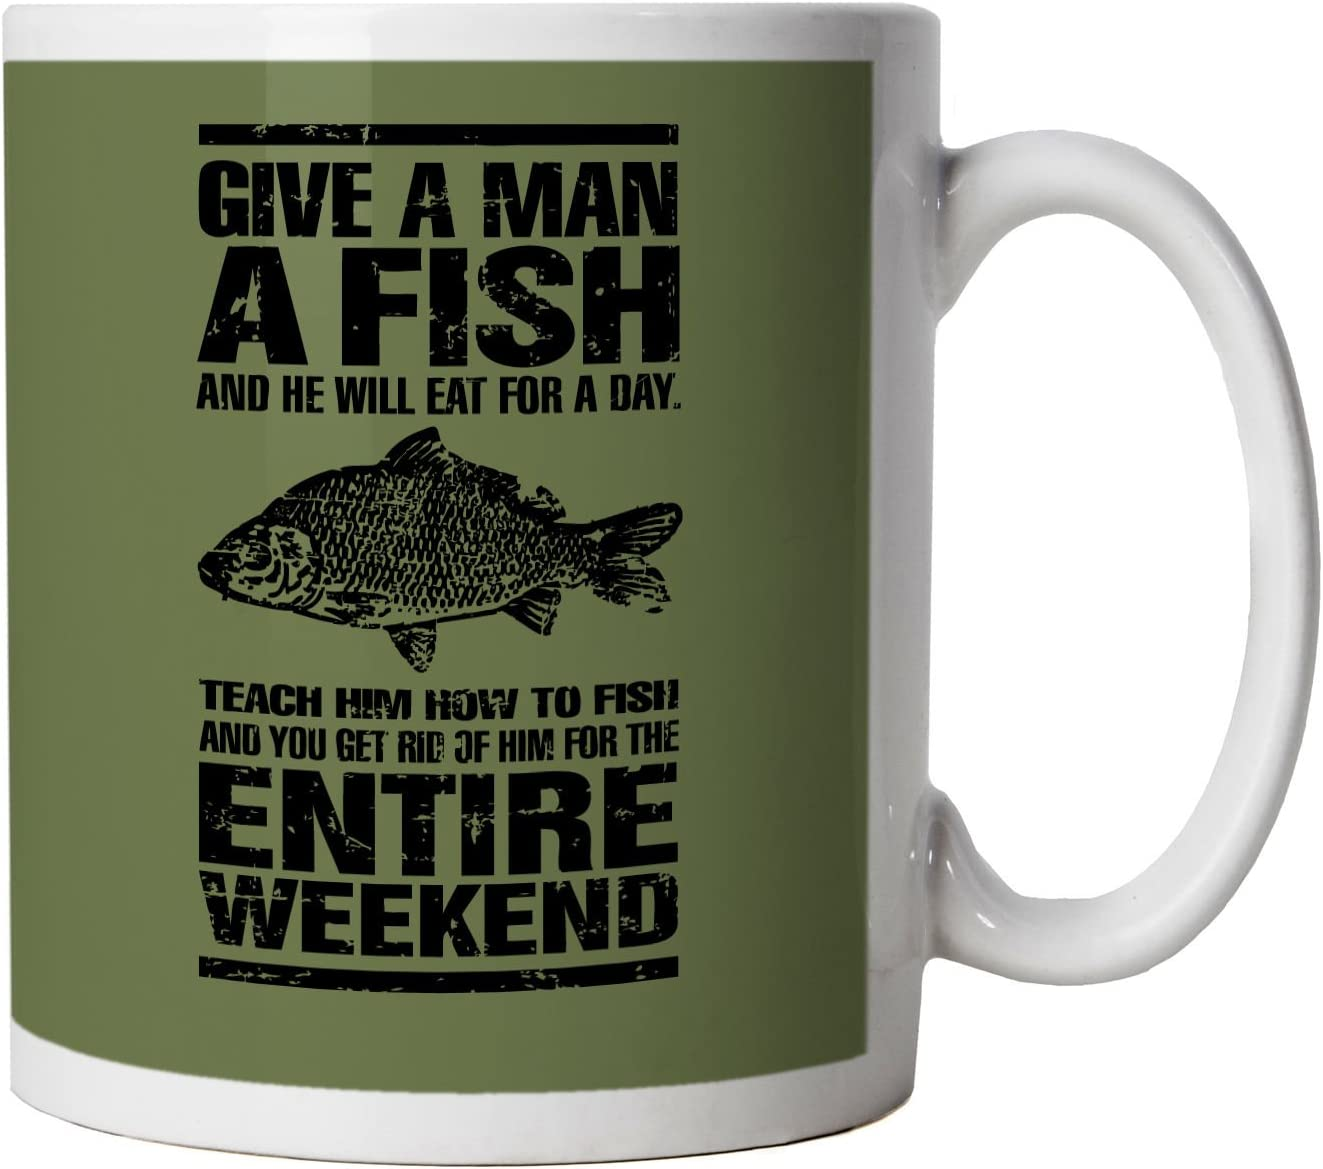 Give A Man A Fish Funny Fishing Mug Coarse Carp Sea Match Fly Specimen Tackle Fishermen Clothing Angling Angler Cool Birthday Christmas Gift Present Him Dad Husband Son 10oz White